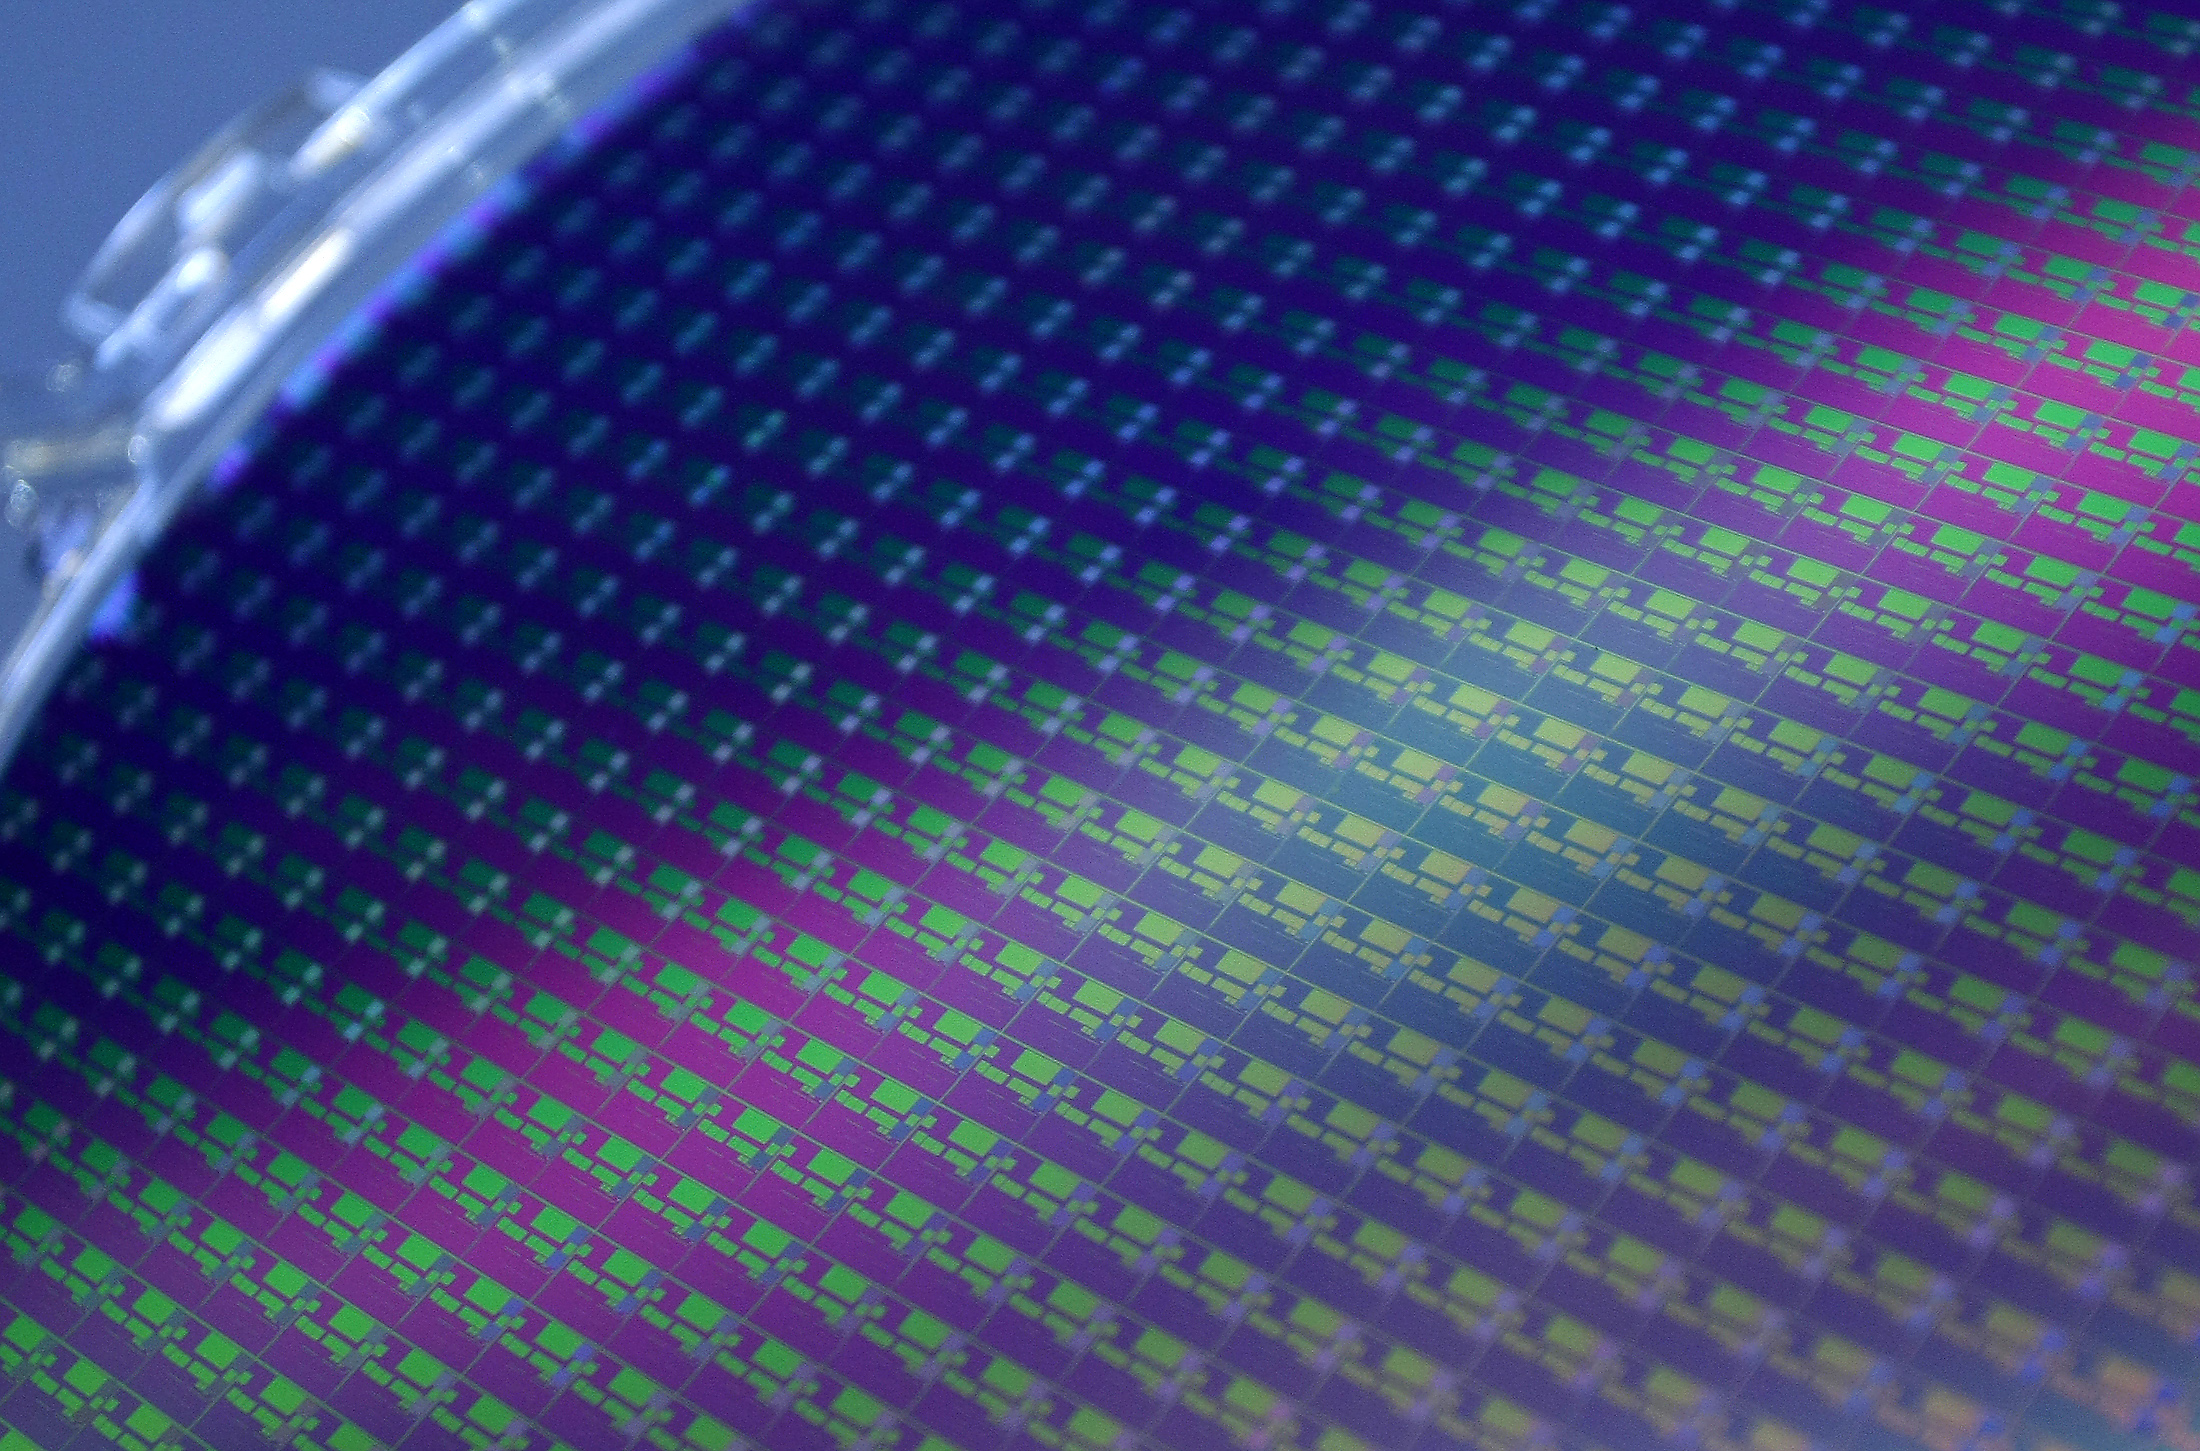 A 12-inch wafer is seen at Taiwan Semiconductor Manufacturing Co. (TSMC) in Hsinchu June 15, 2010. REUTERS/Pichi Chuang